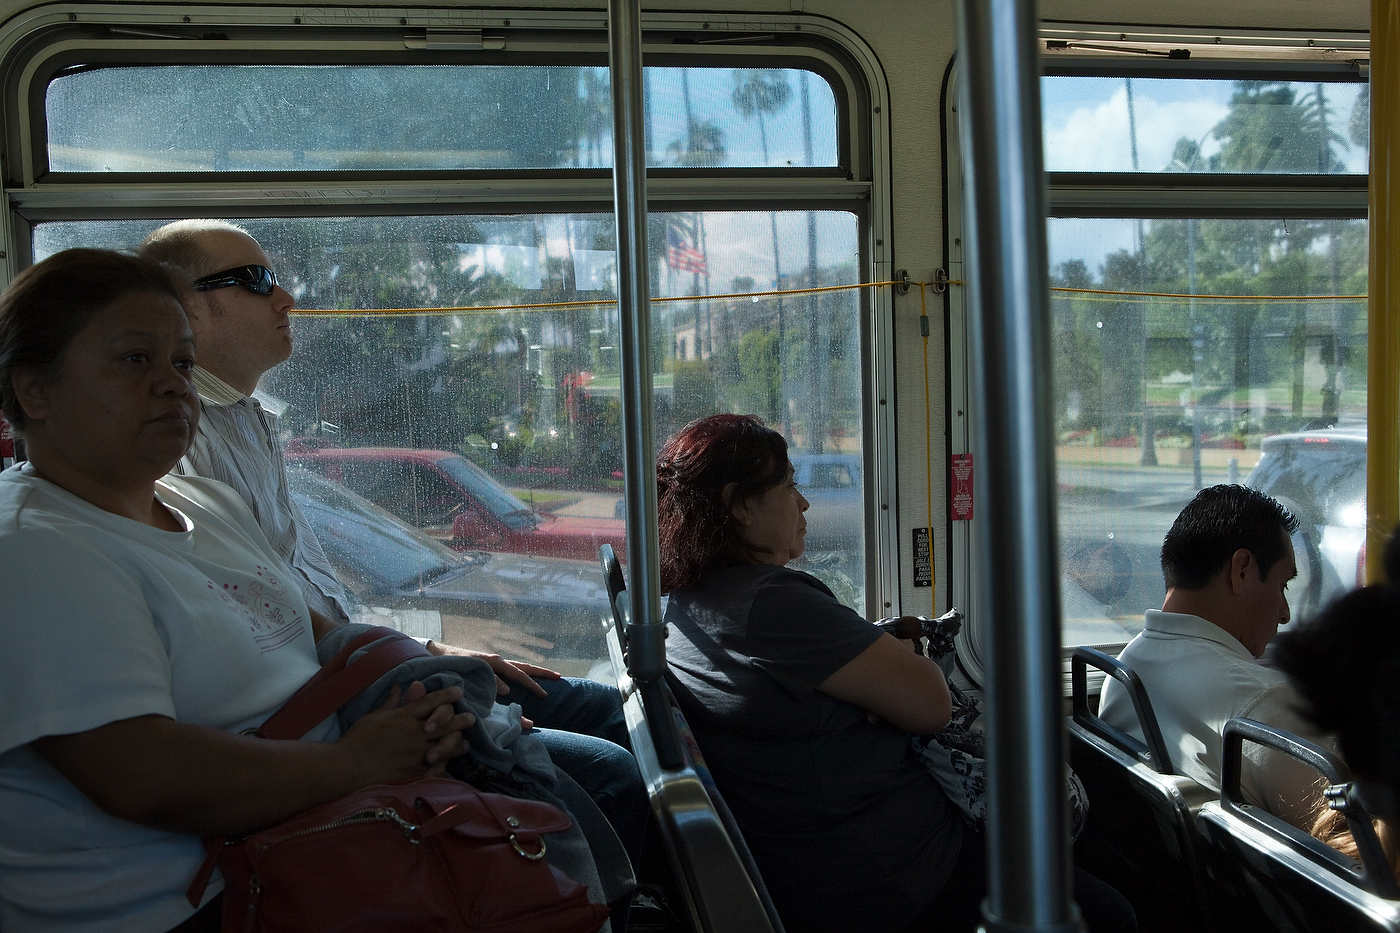 Passengers ride through Beverly Hills on Sunset Boulevard, Line 302.